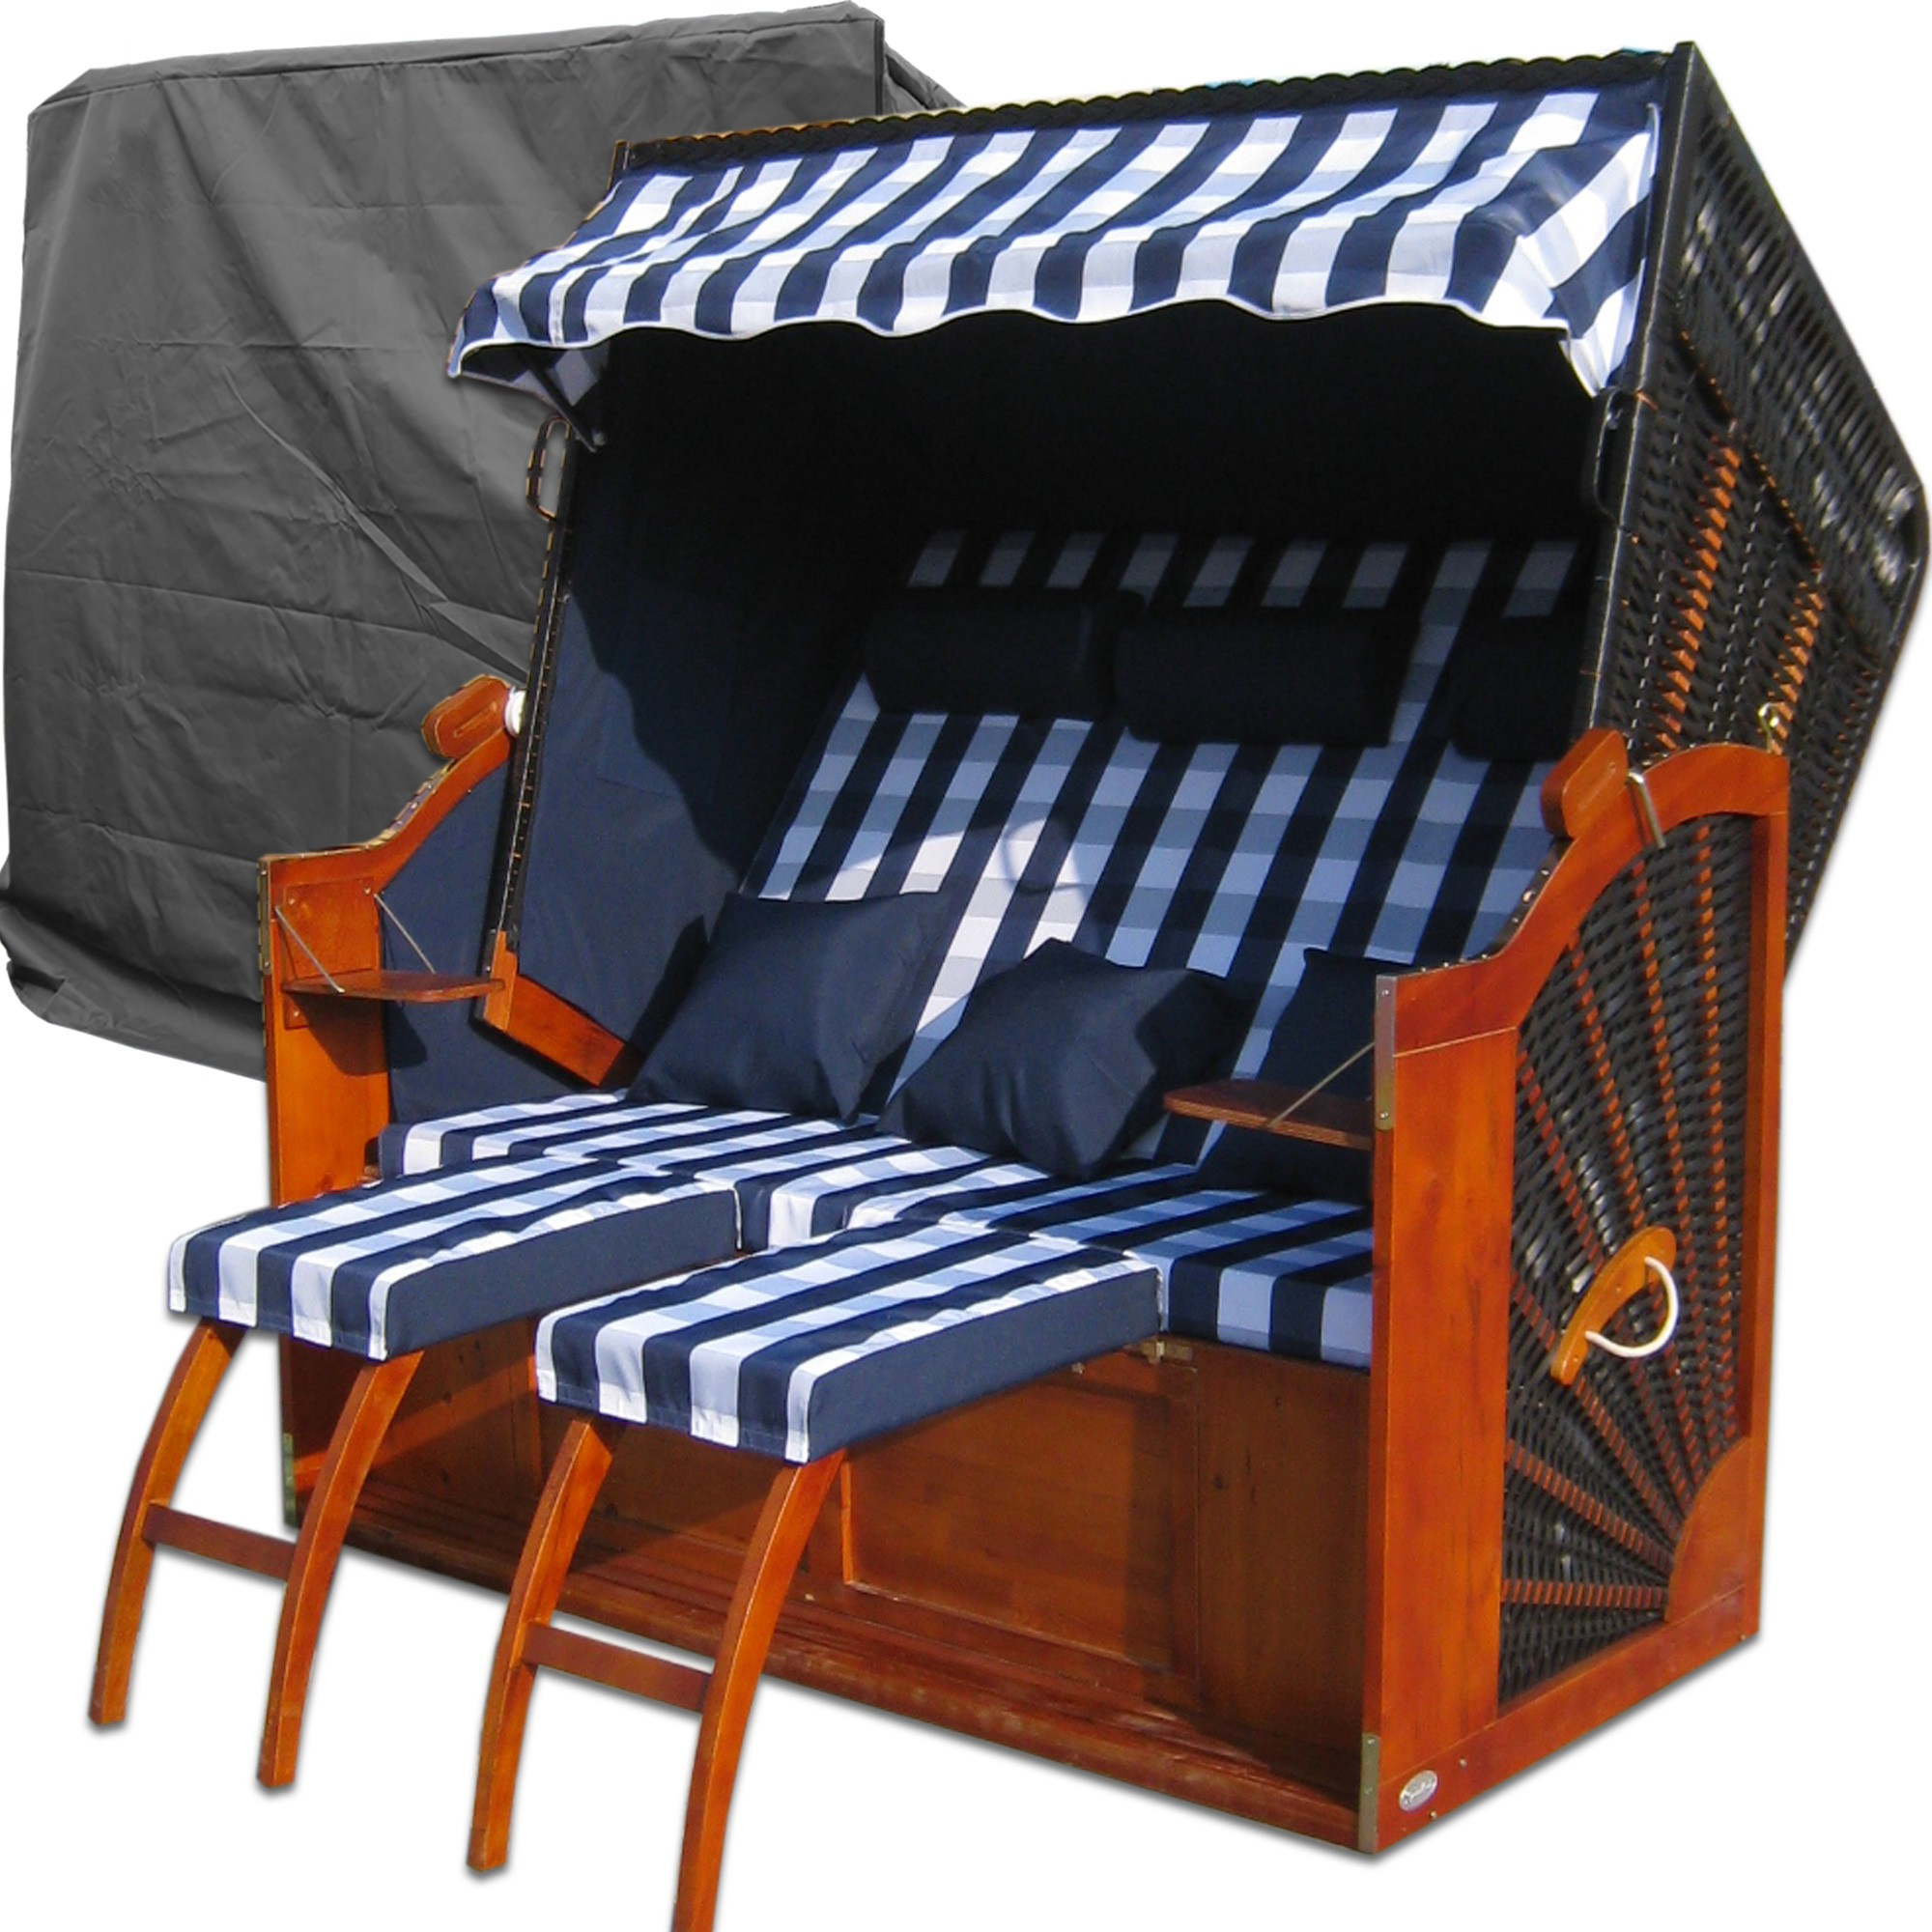 strandkorb hamburg g nstig strandkorb xxl kaufen. Black Bedroom Furniture Sets. Home Design Ideas